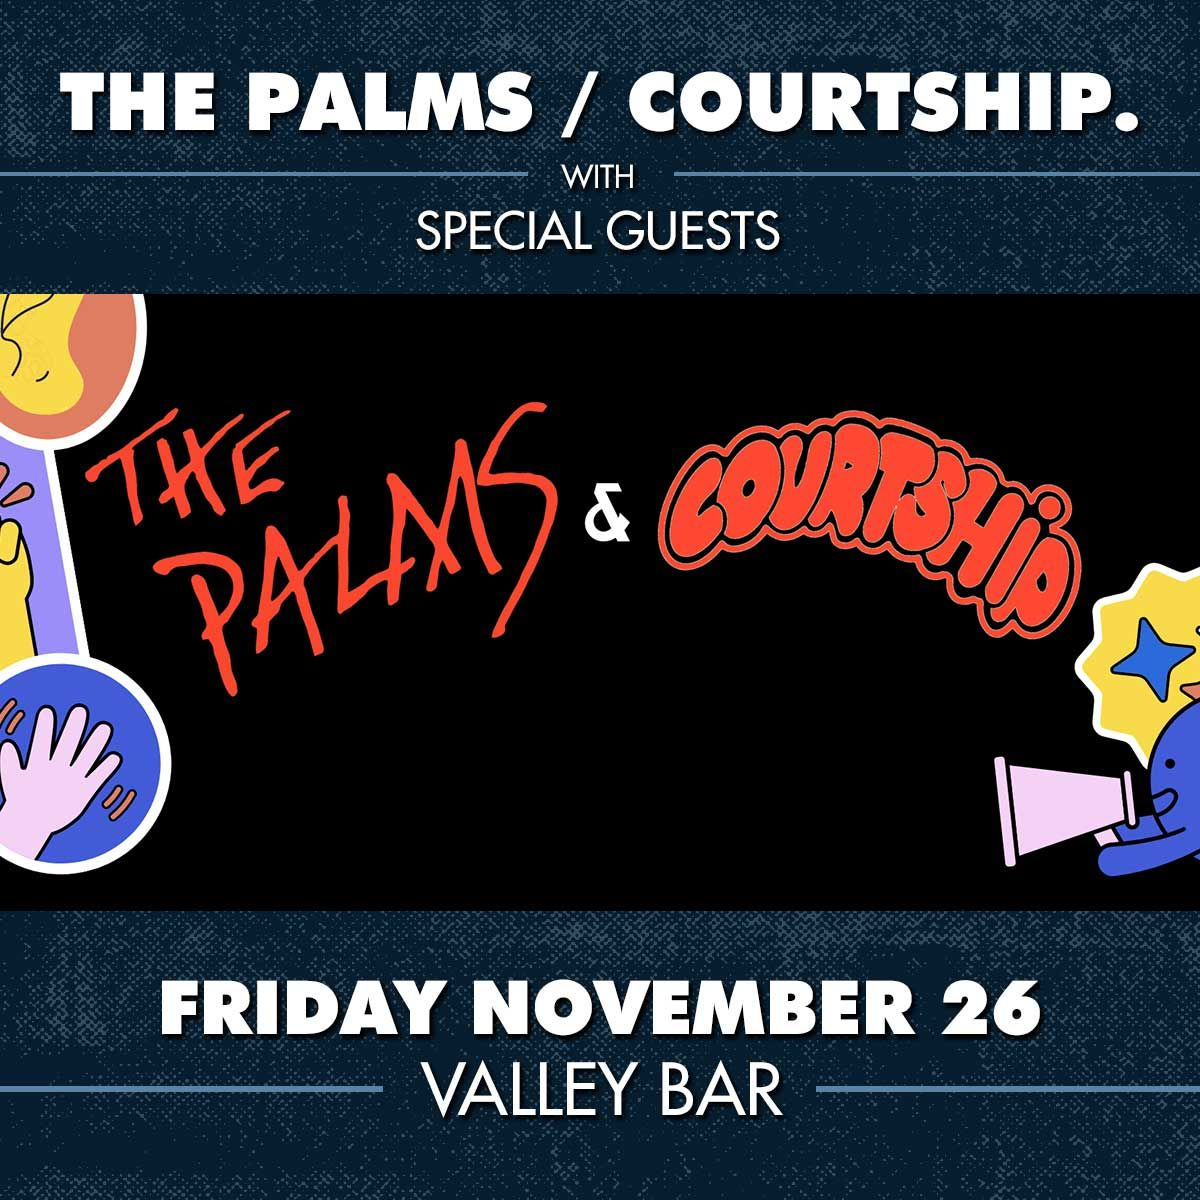 COURTSHIP. / THE PALMS